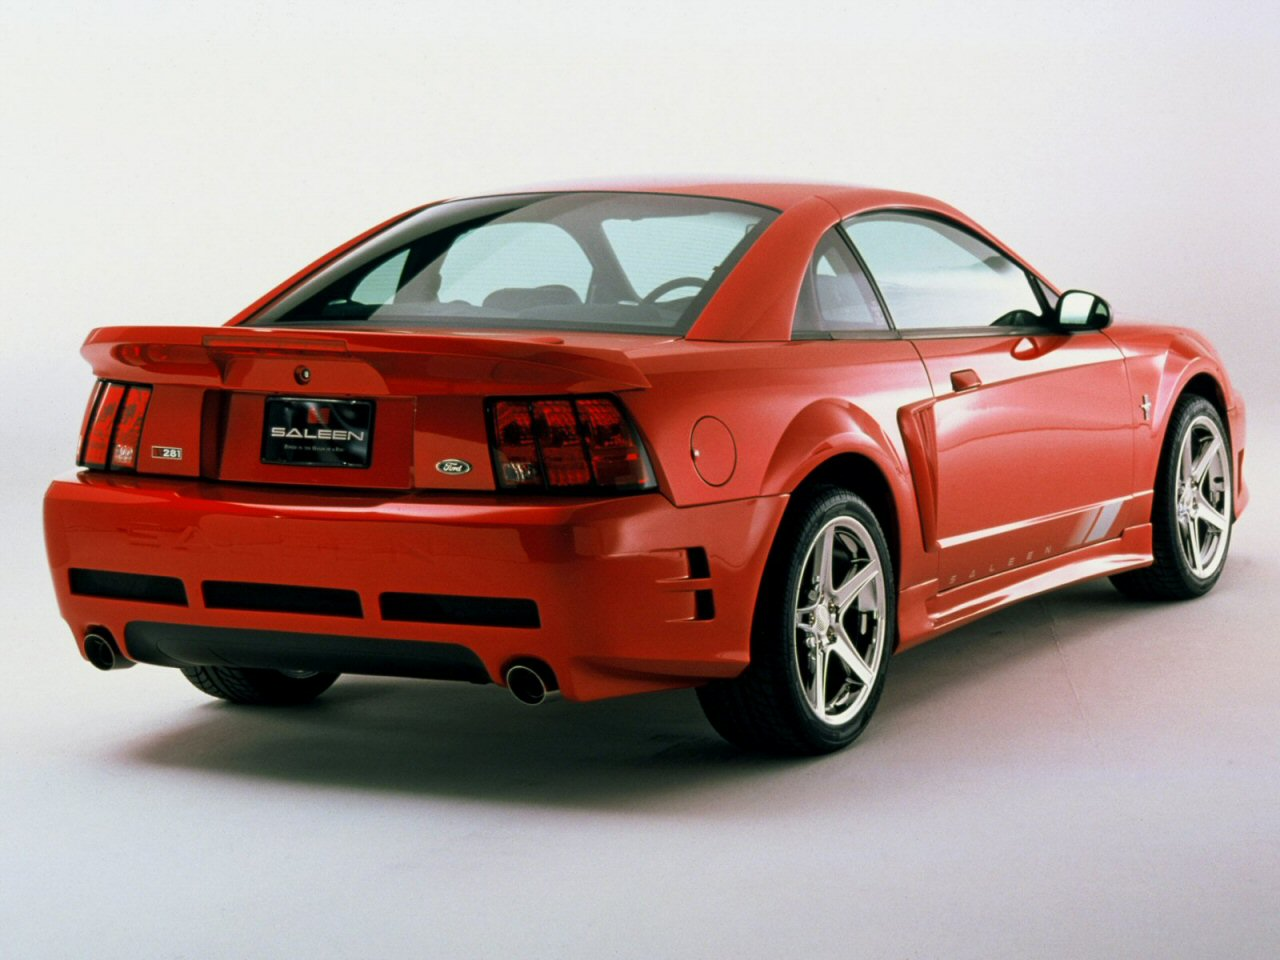 1996 ford mustang saleen s281. Black Bedroom Furniture Sets. Home Design Ideas